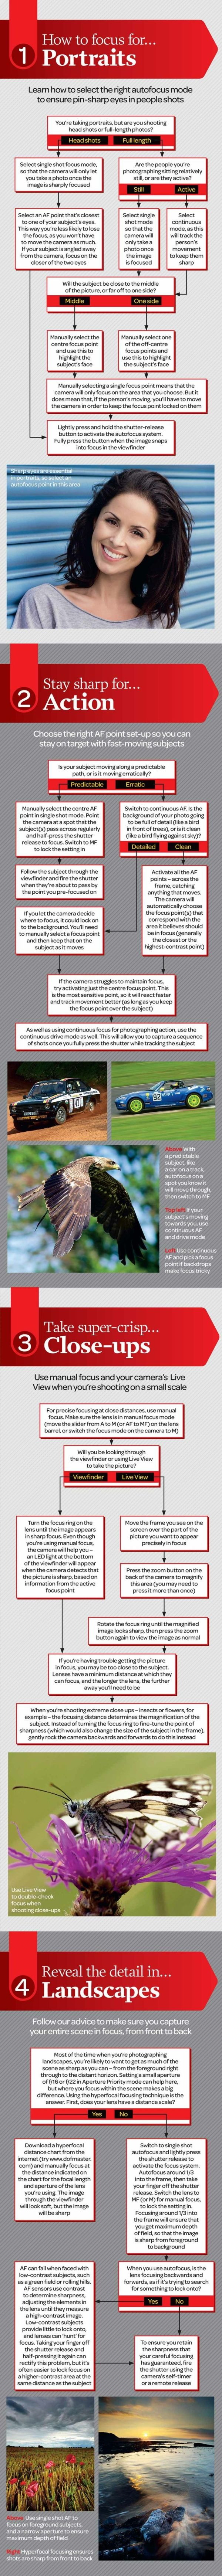 How to focus your camera for any subject or scene: free photography cheat sheet by herland